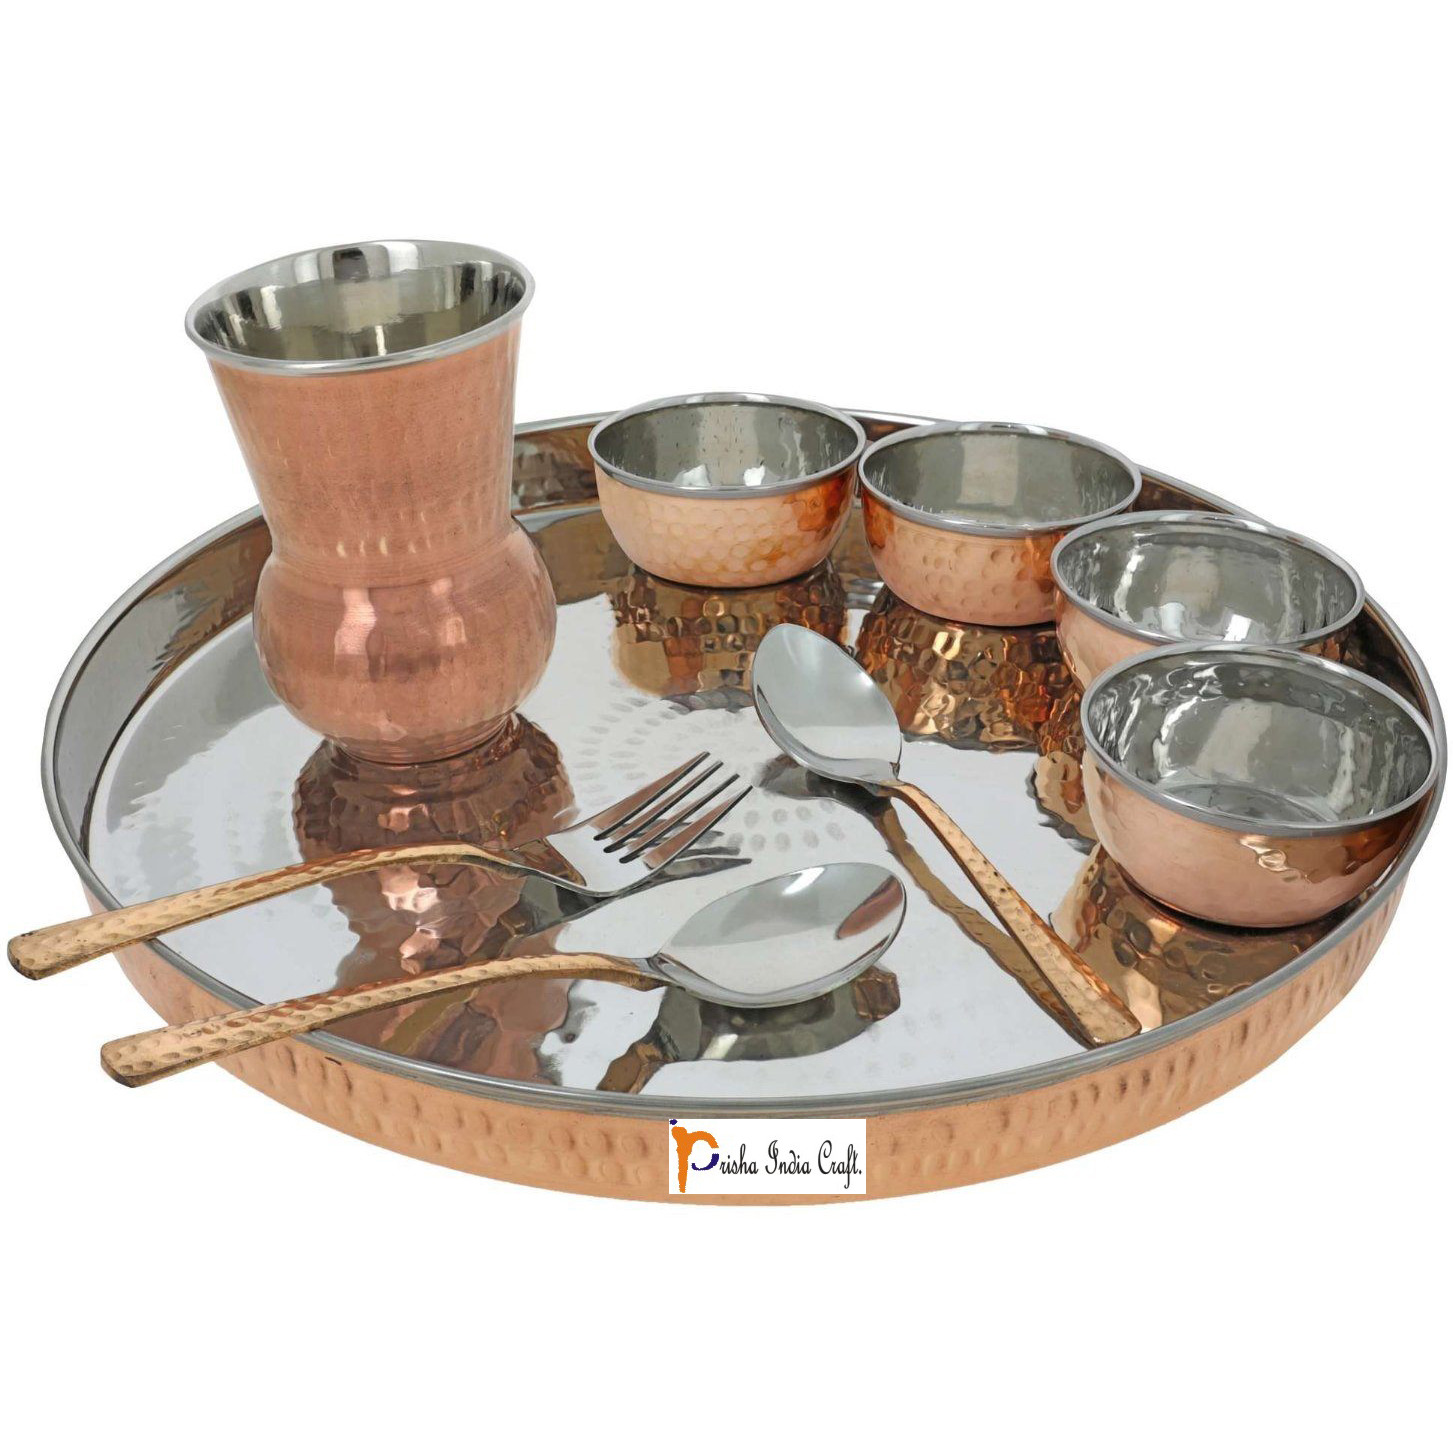 Prisha India Craft B. Set of 2 Dinnerware Traditional Stainless Steel Copper Dinner Set of Thali Plate, Bowls, Glass and Spoons, Dia 13  With 1 Pure Copper Hammered Pitcher Jug - Christmas Gift